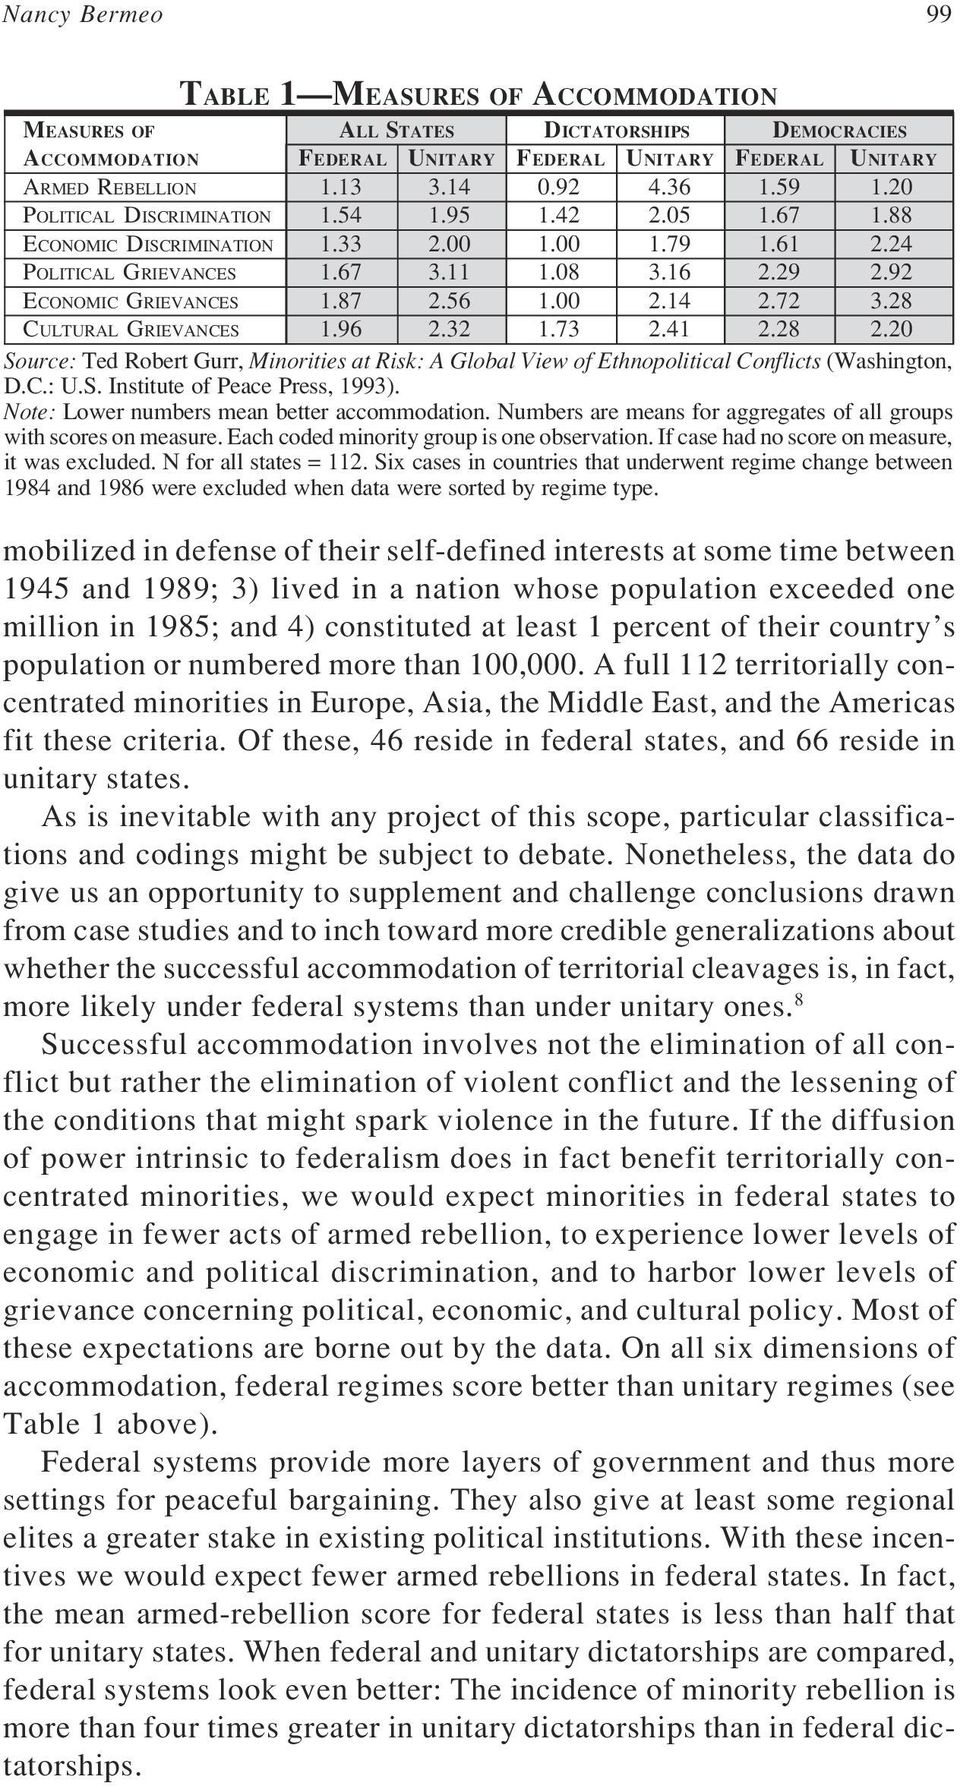 00 2.14 2.72 3.28 CULTURAL GRIEVANCES 1.96 2.32 1.73 2.41 2.28 2.20 Source: Ted Robert Gurr, Minorities at Risk: A Global View of Ethnopolitical Conflicts (Washington, D.C.: U.S. Institute of Peace Press, 1993).